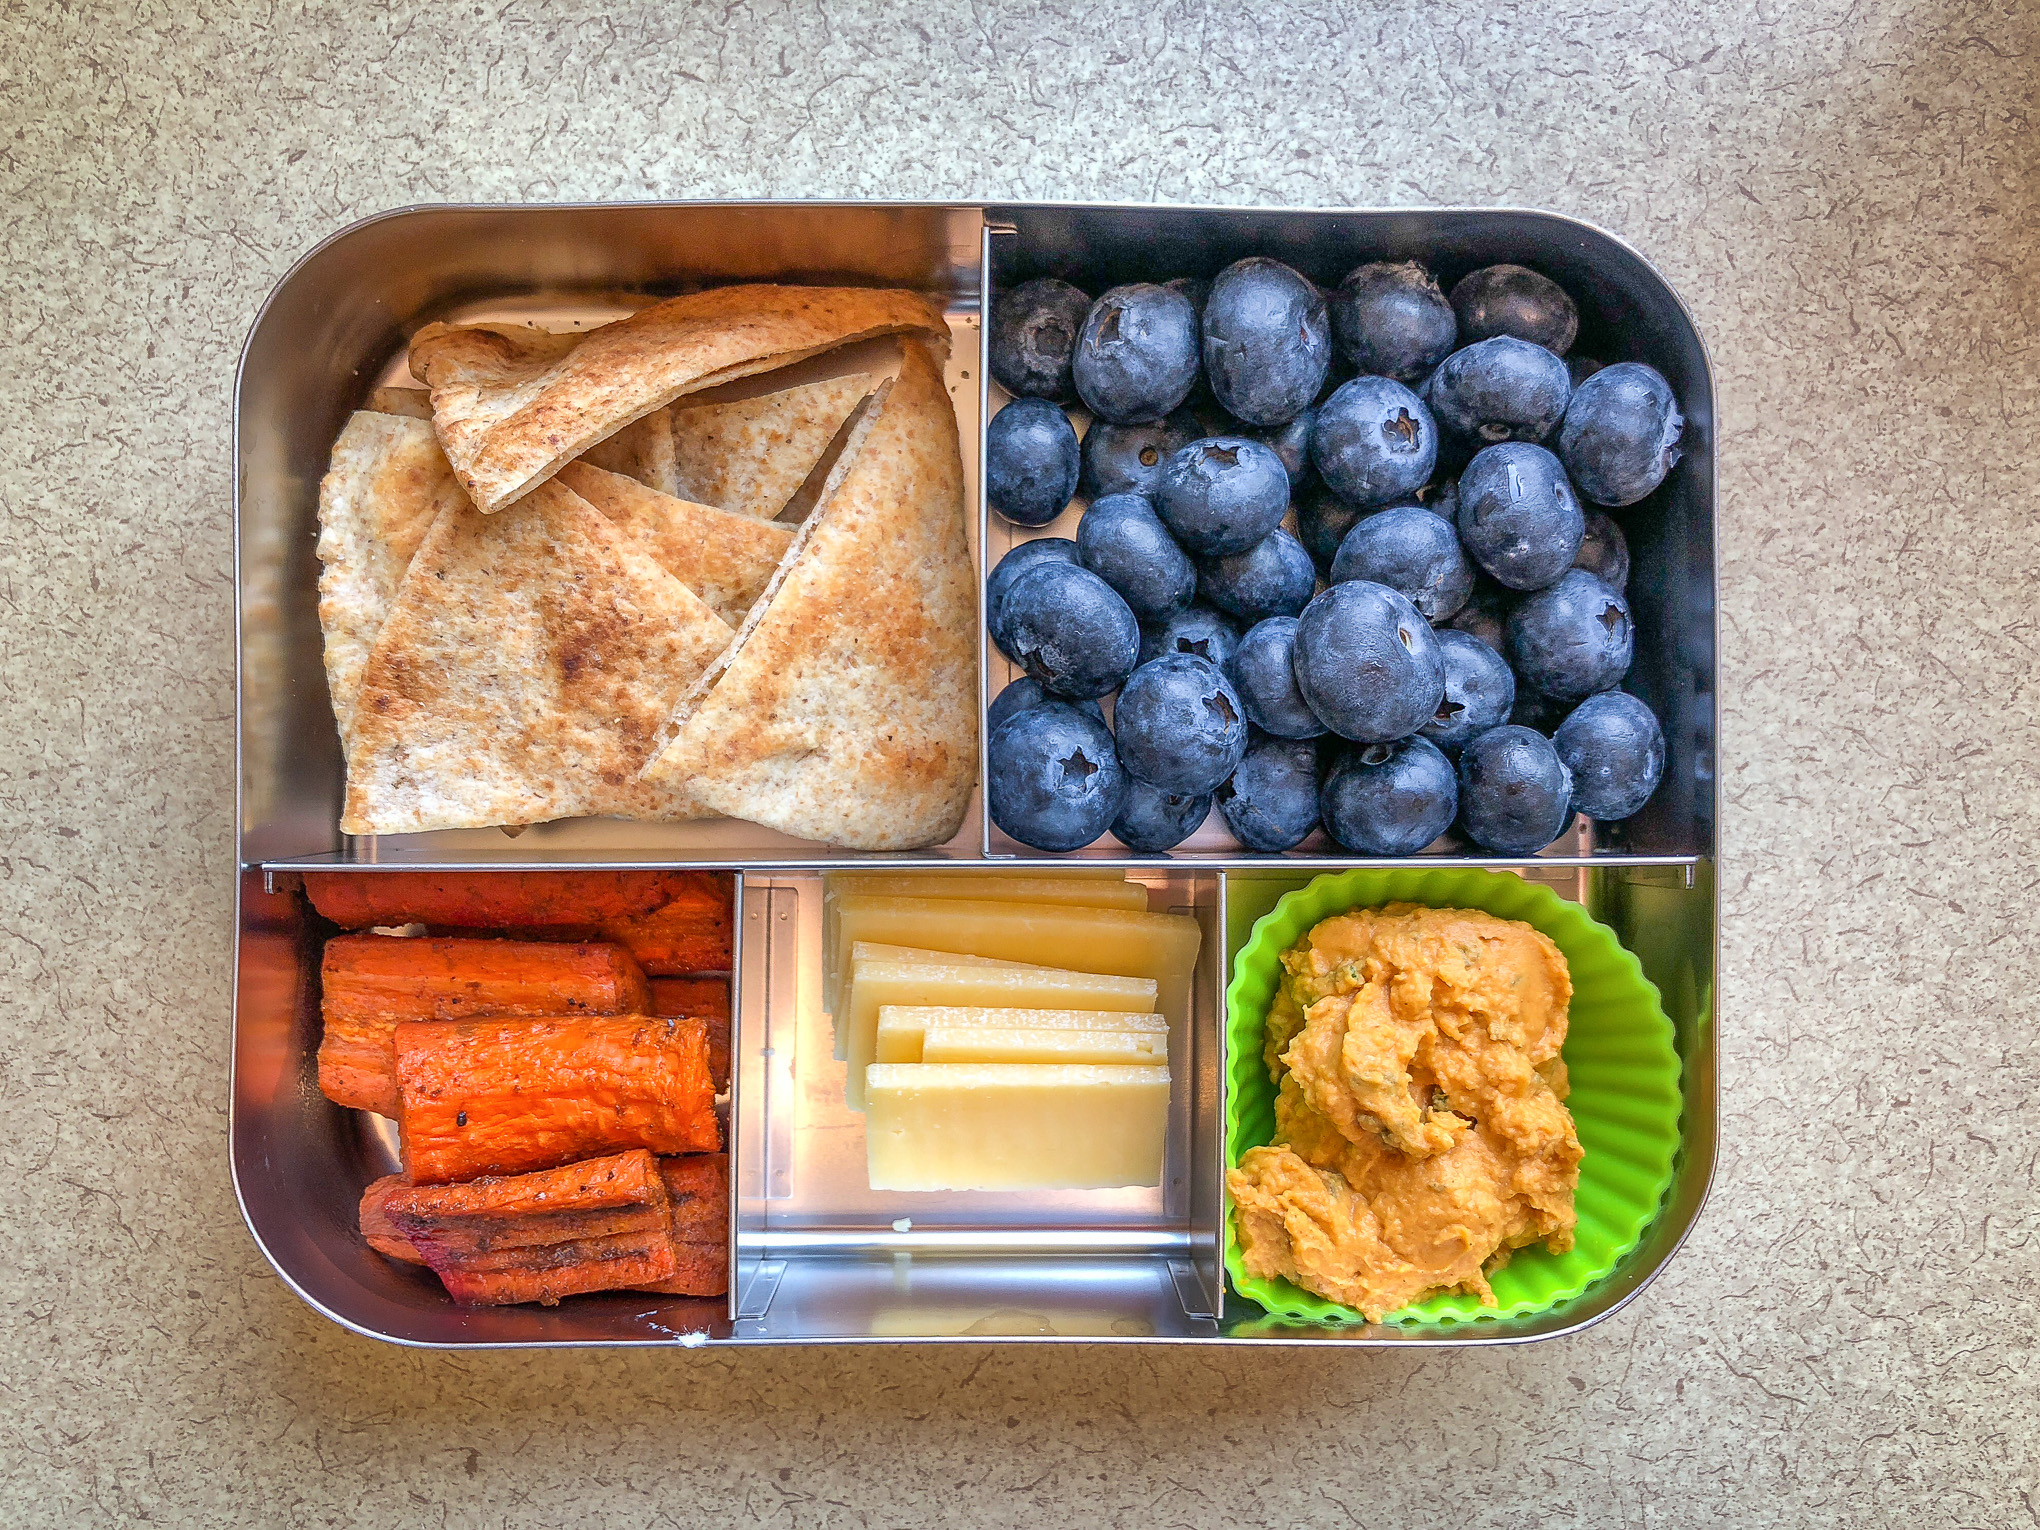 Bento box filled with pita chips and fruit